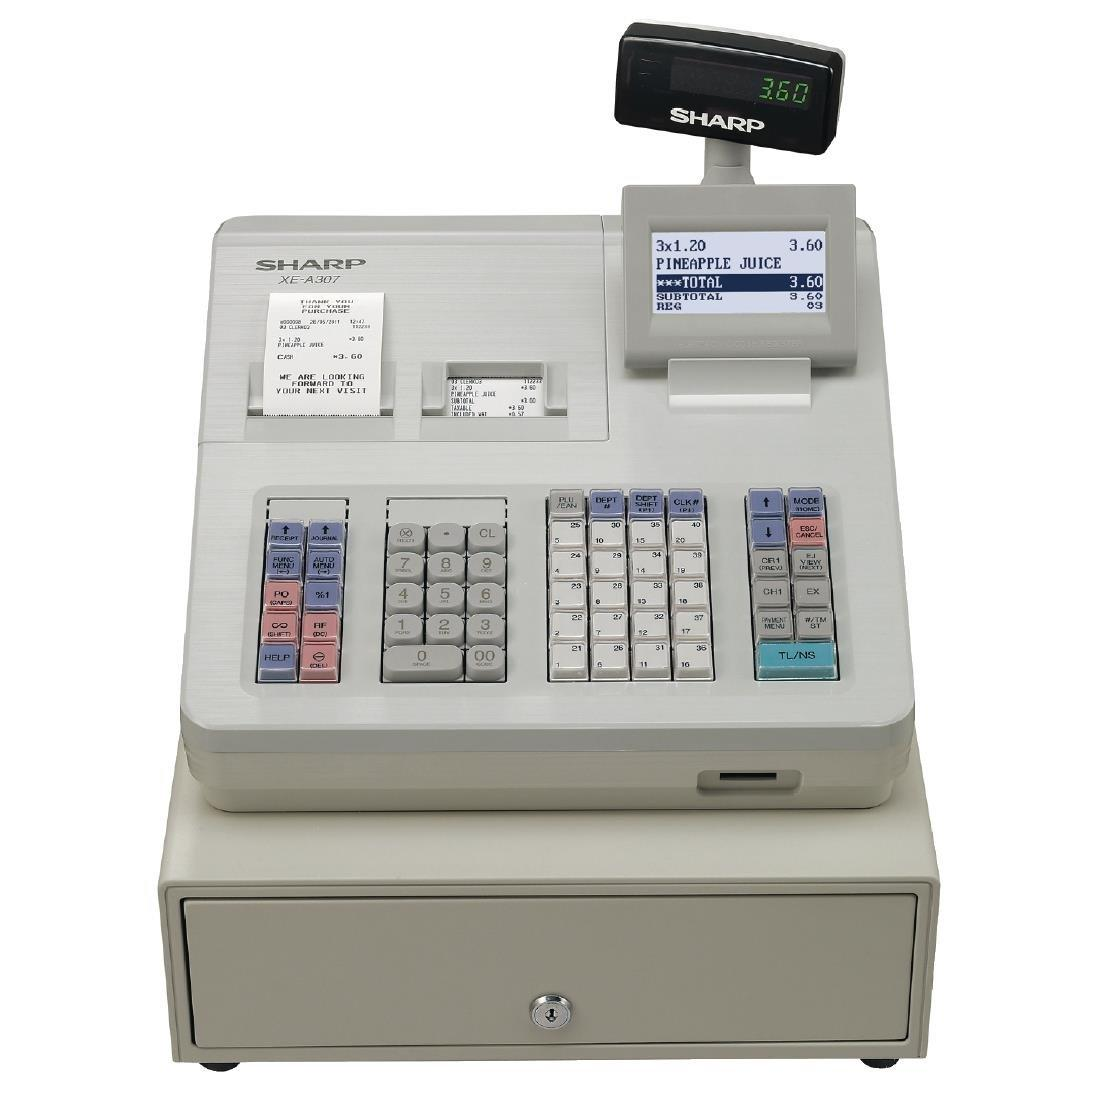 CF998 - Sharp XE-A307 Cash Register (Direct)